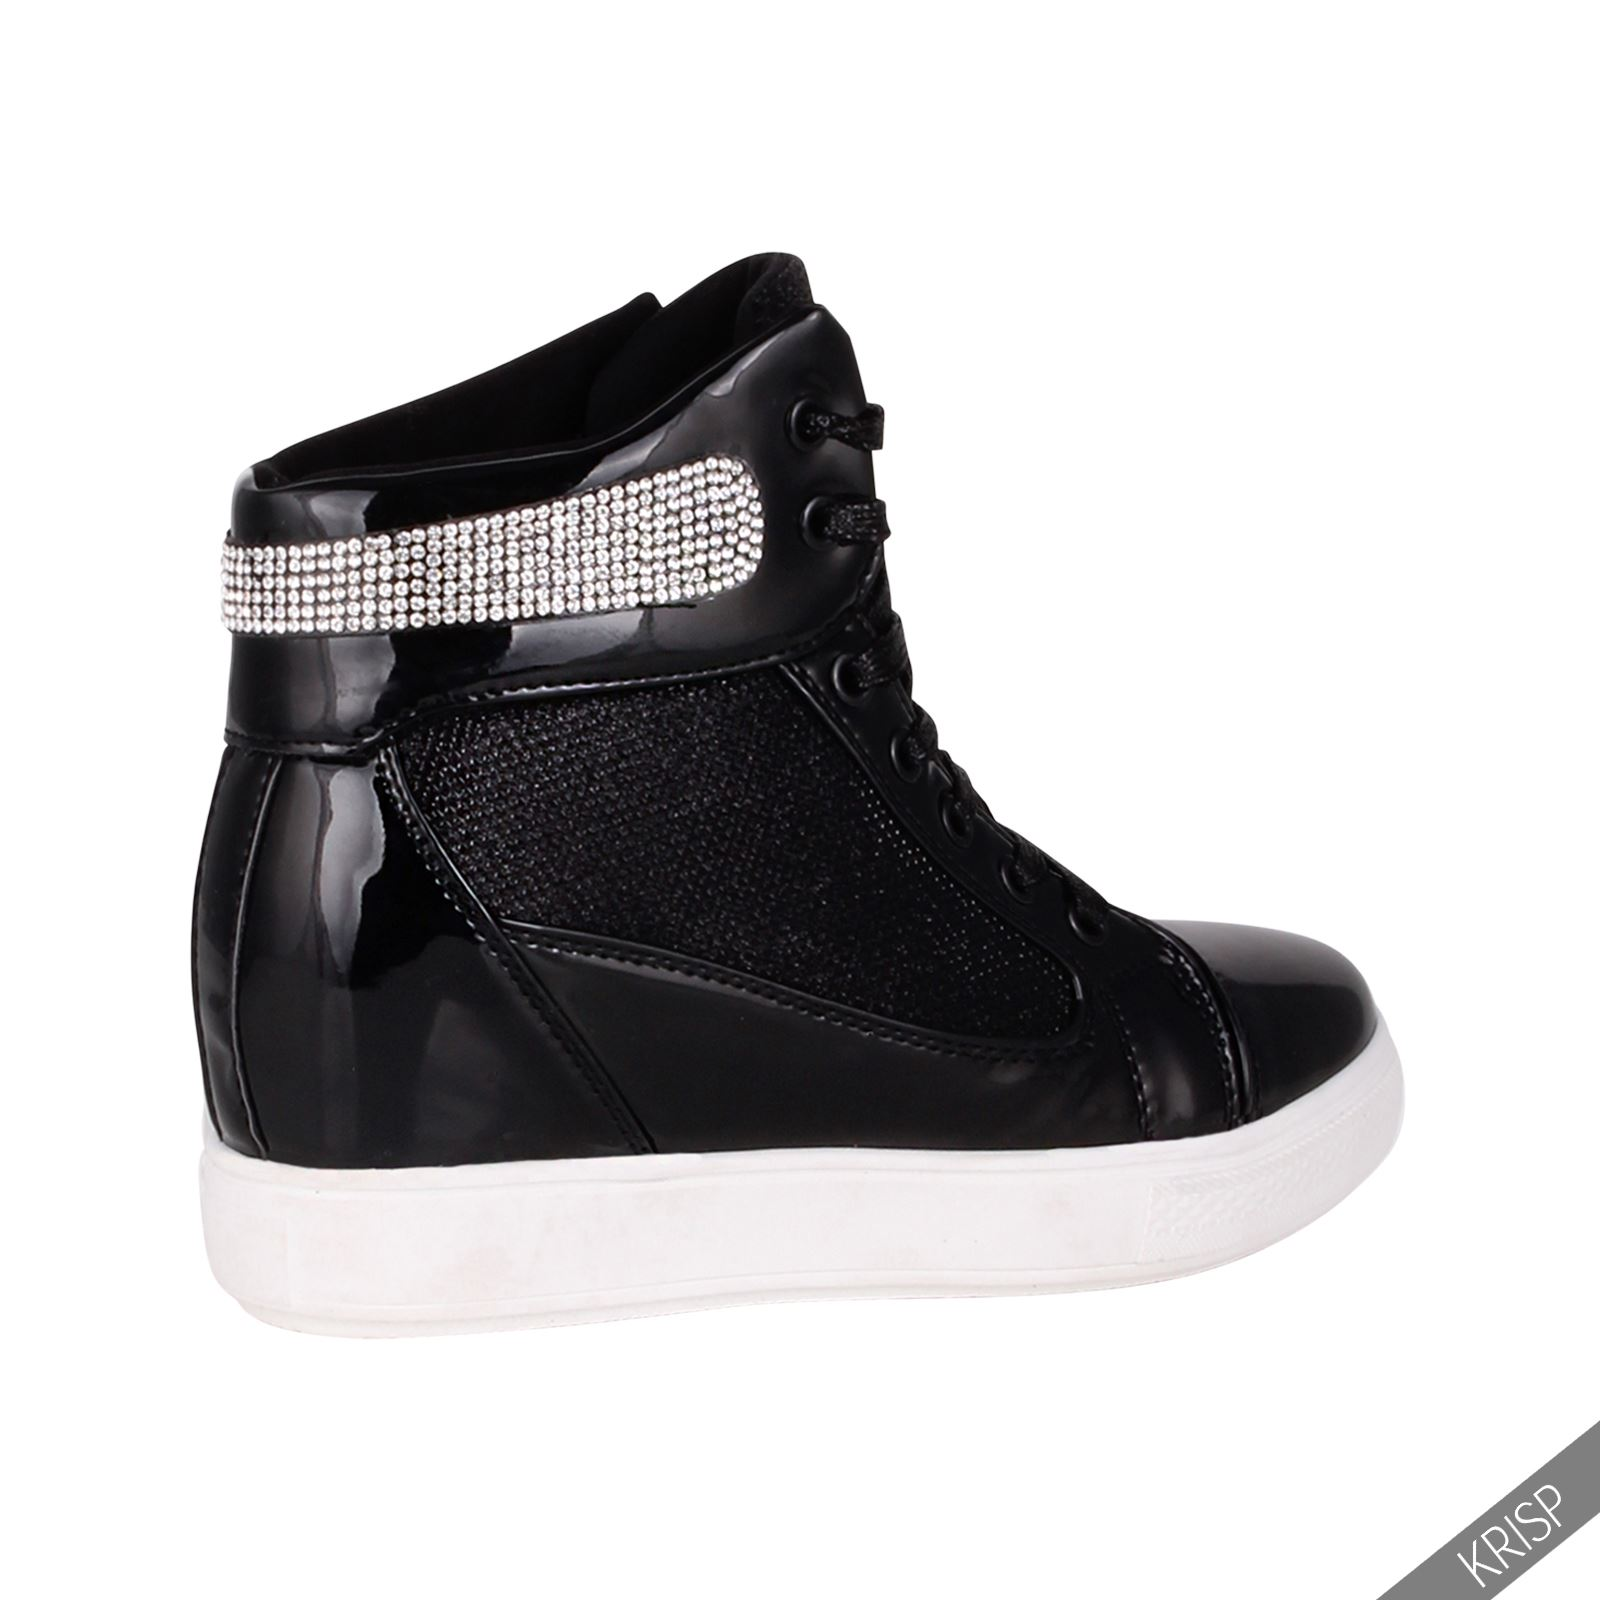 Studded Wedge Tennis Shoes